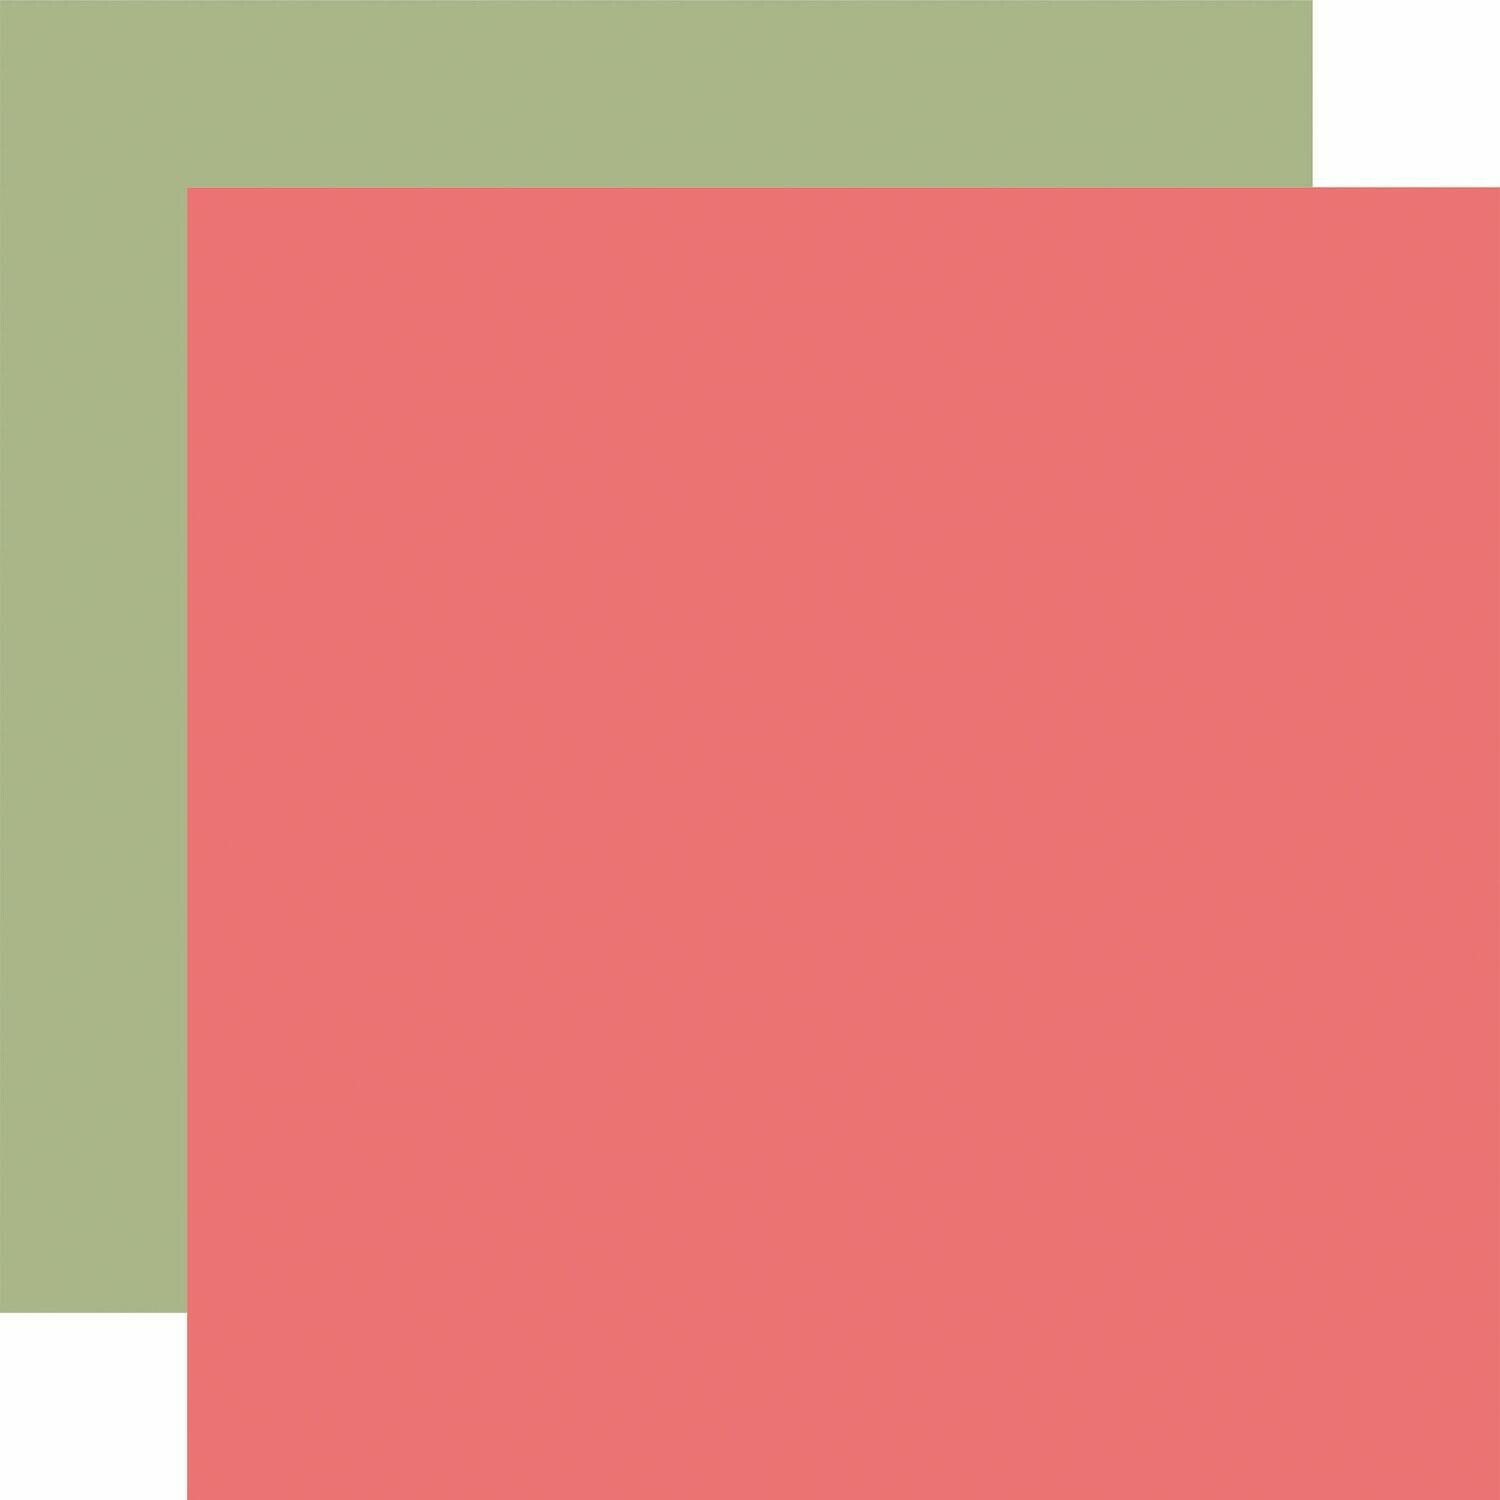 Farmhouse Market Pink / Green -Coordinating Solid